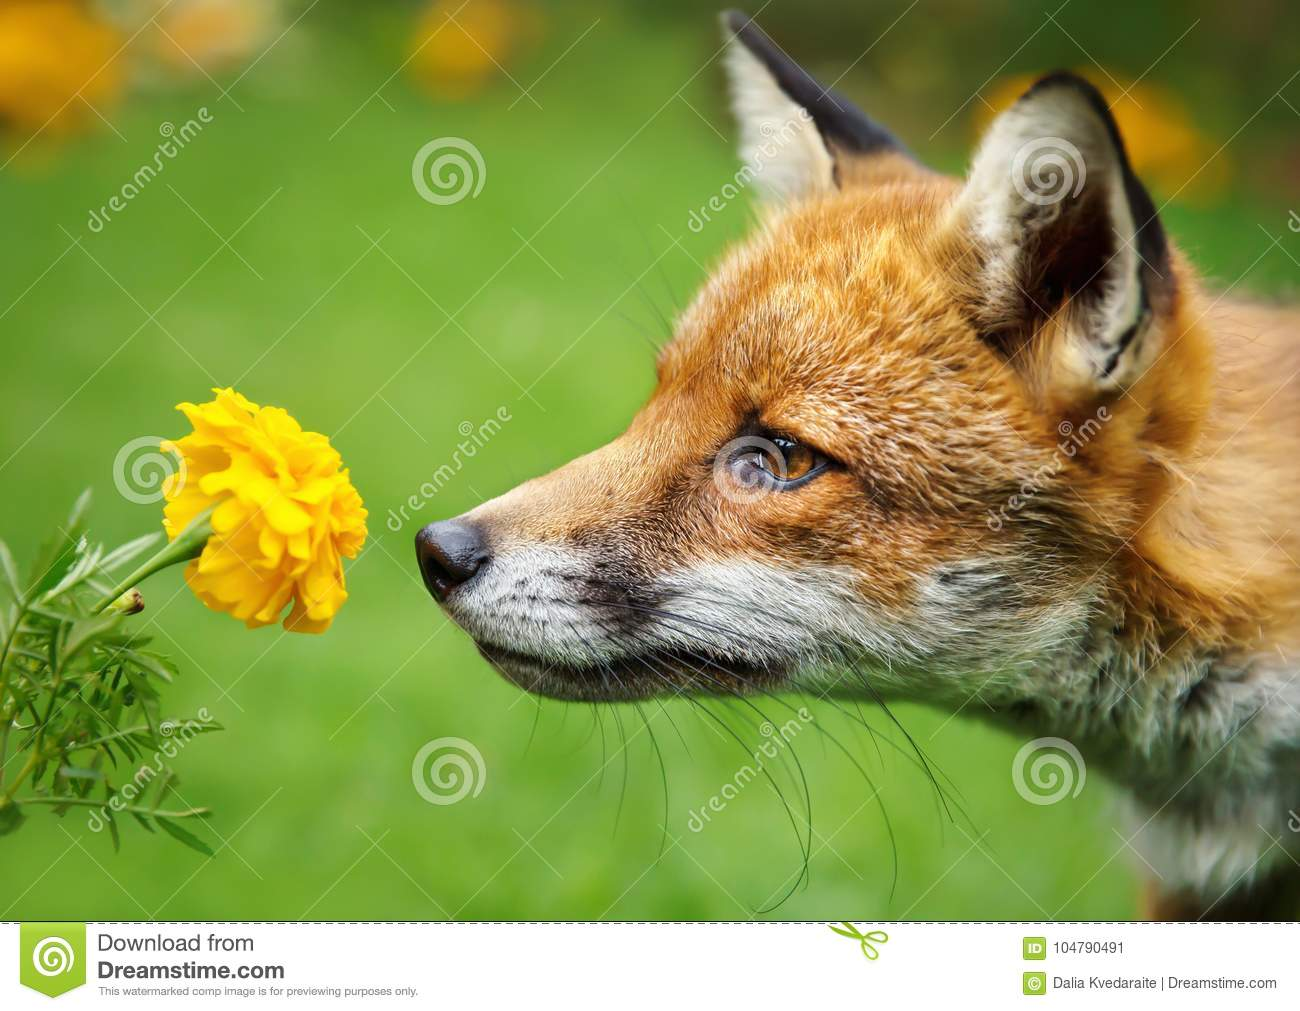 Closeup of a red fox smelling the flower